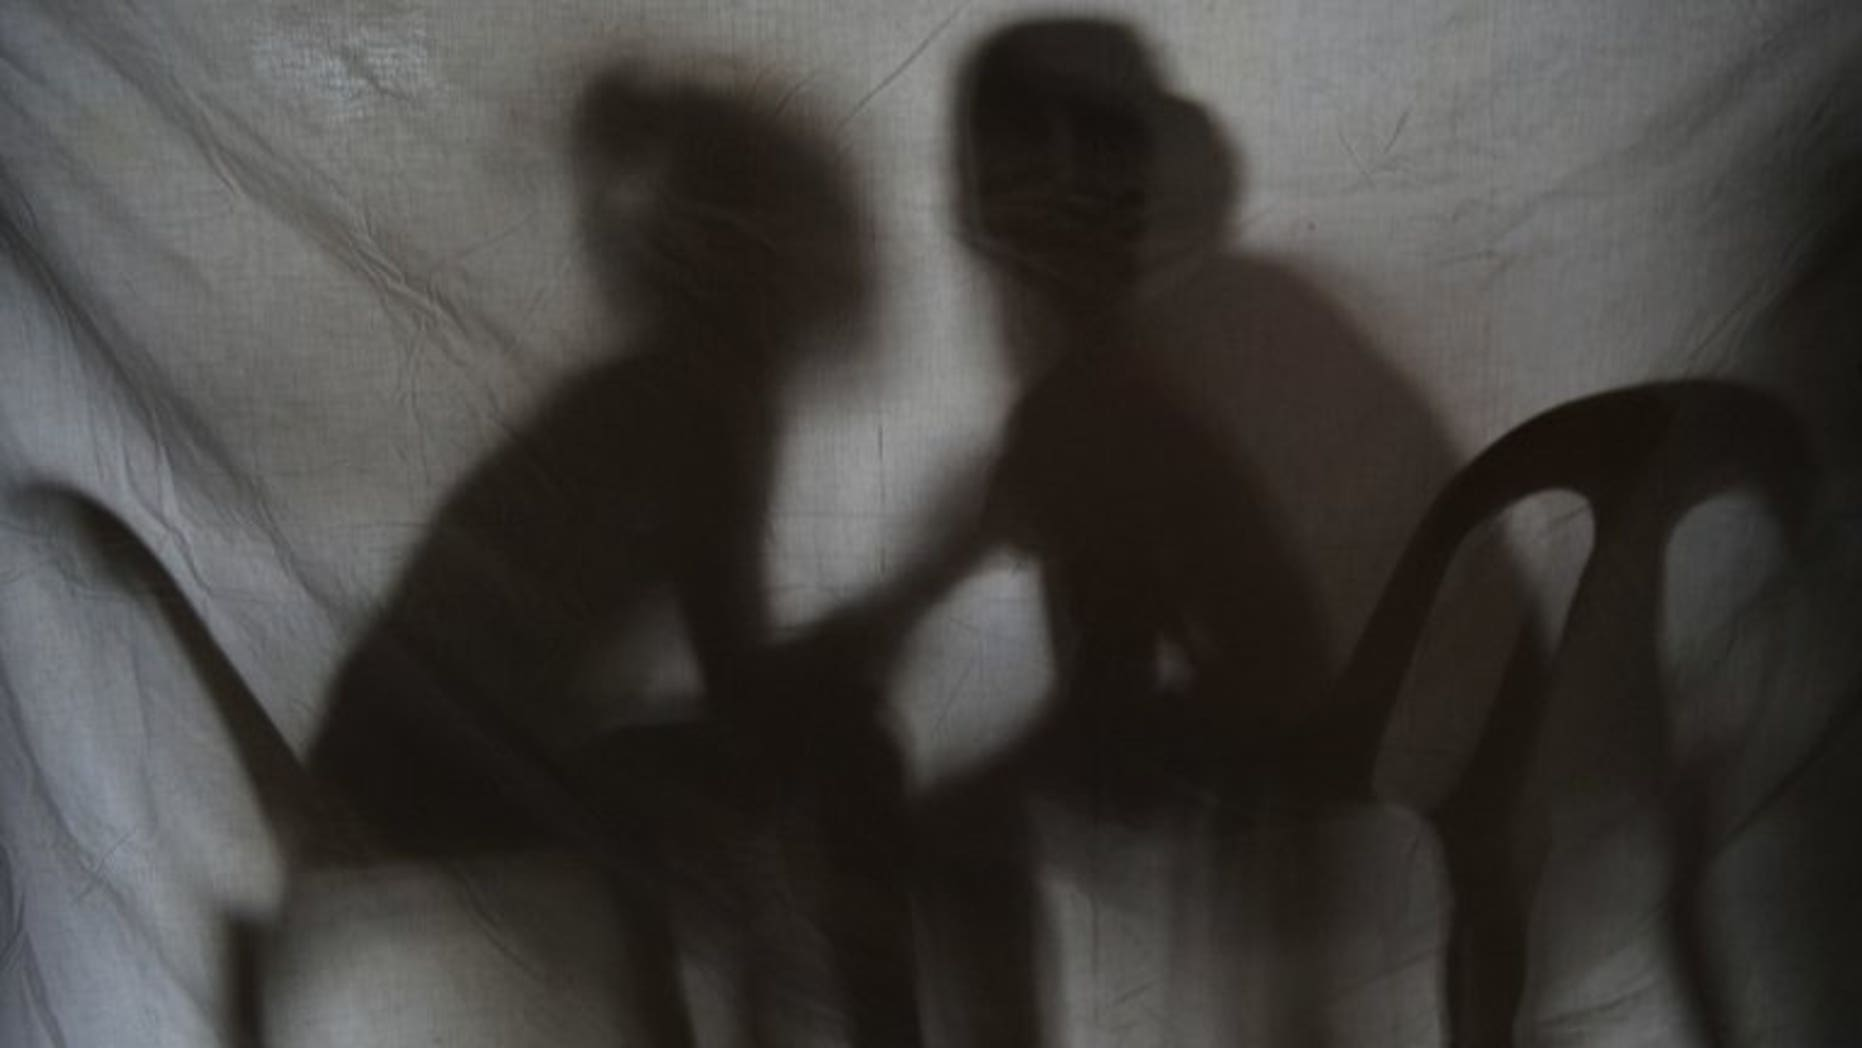 The sexual abuse of British girls of South Asian origin is going unreported because authorities tend to focus on gangs that target white youngsters, according to a study.